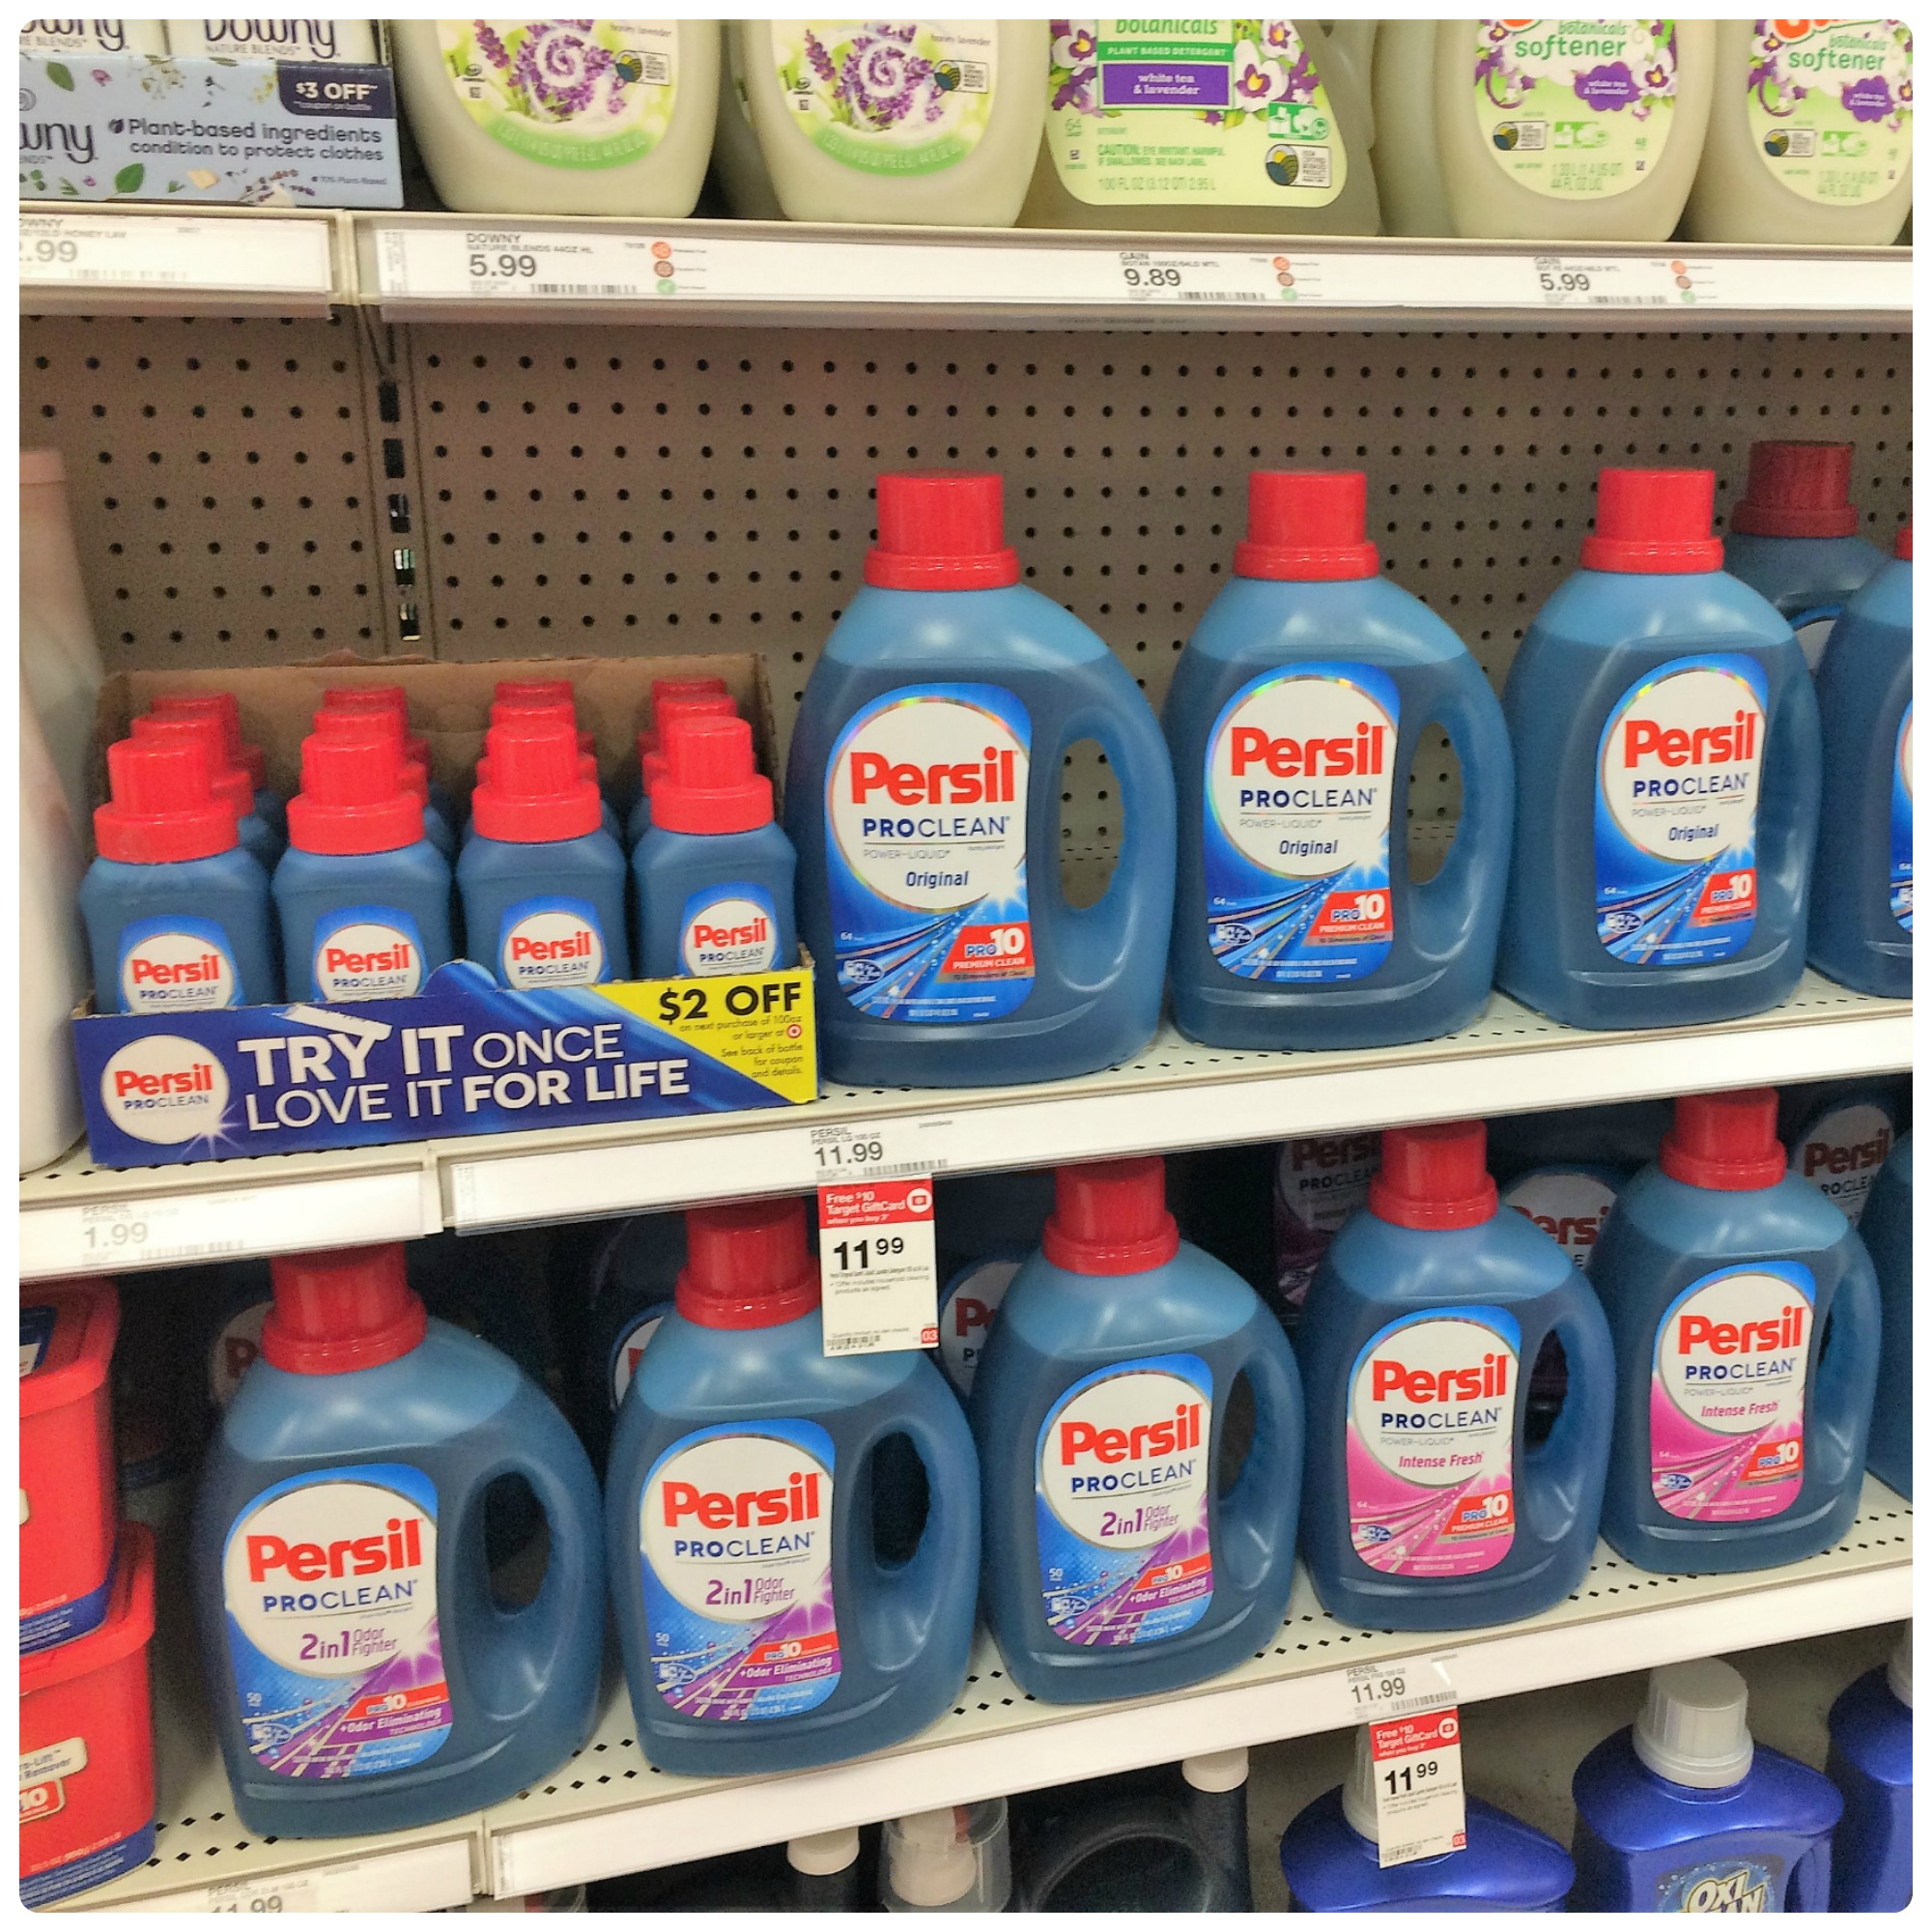 Persil Pro Clean laundry detergent at Target